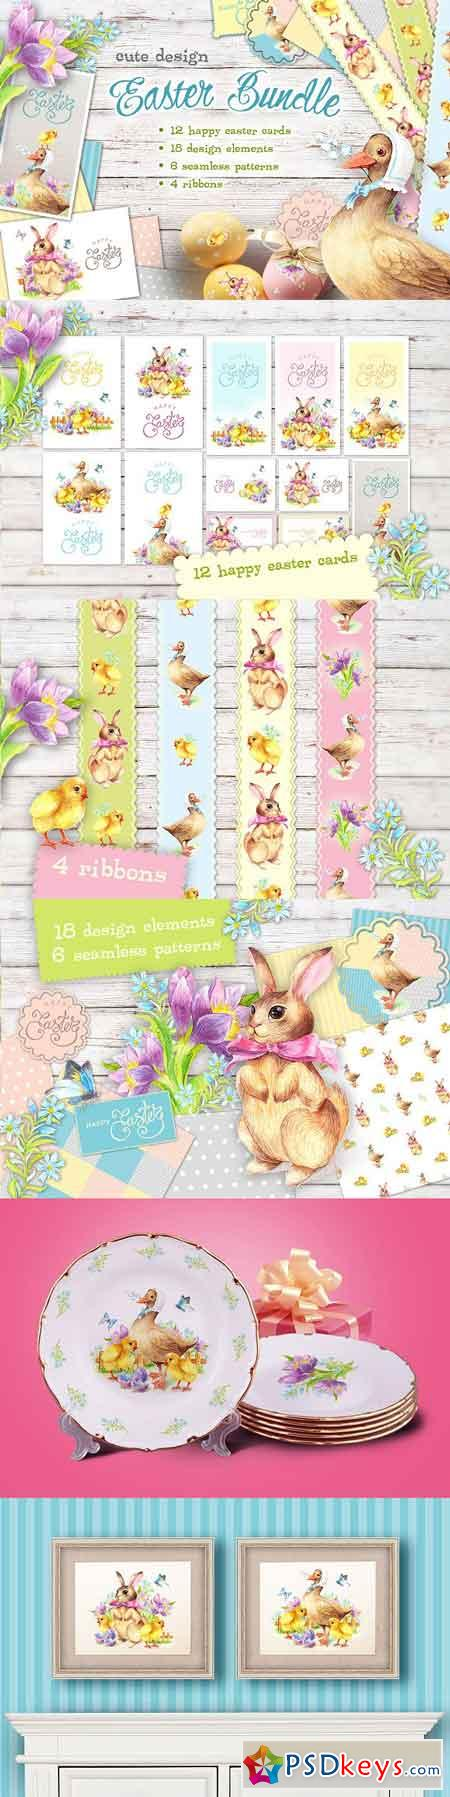 Watercolor Easter Bundle cute design 1228373